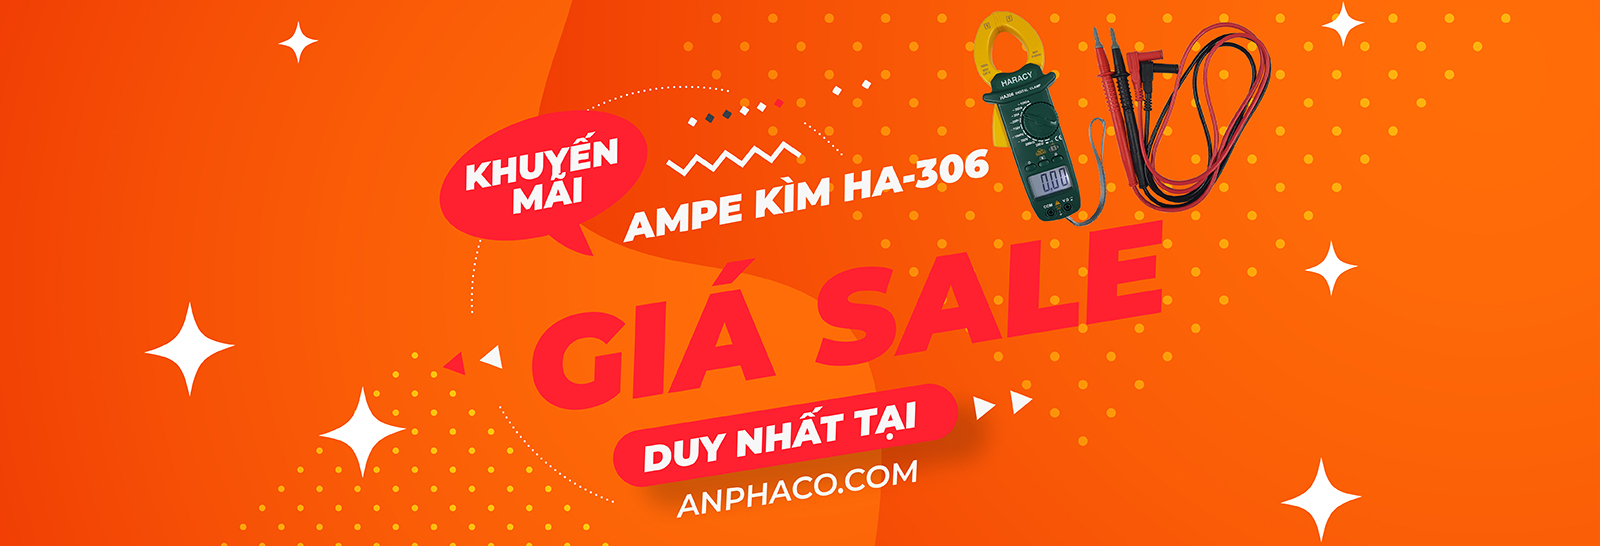 Ampe kìm Accutest HA-306